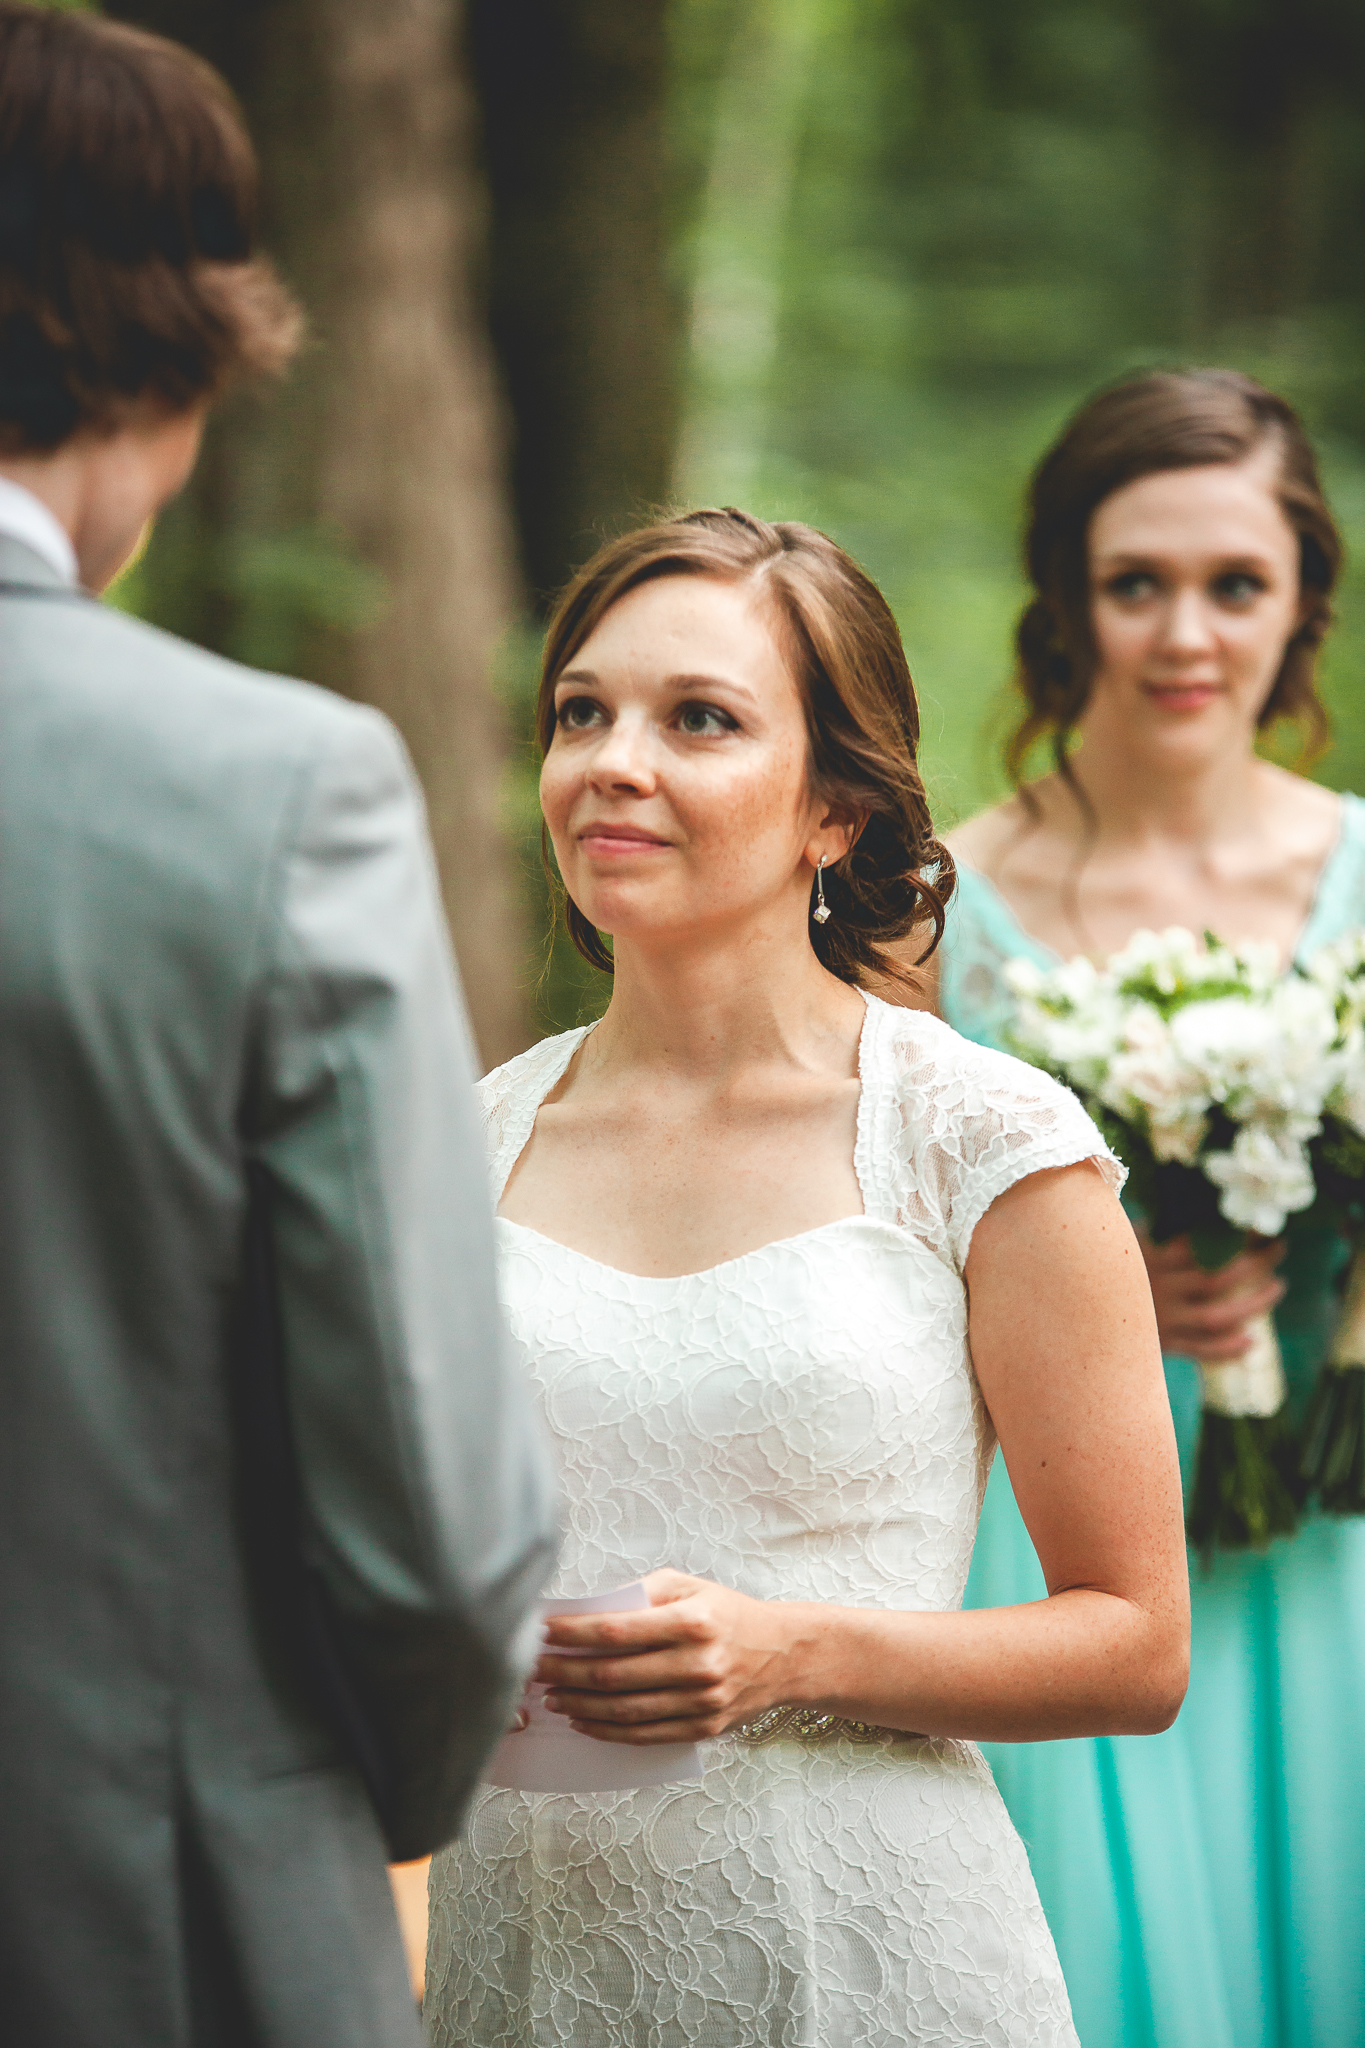 Amy D Photography- Barrie Wedding Photography- Wedding Photography Barrie- Forest Wedding - Forest Wedding Ceremony- Wedding Ceremony Ideas-64.jpg